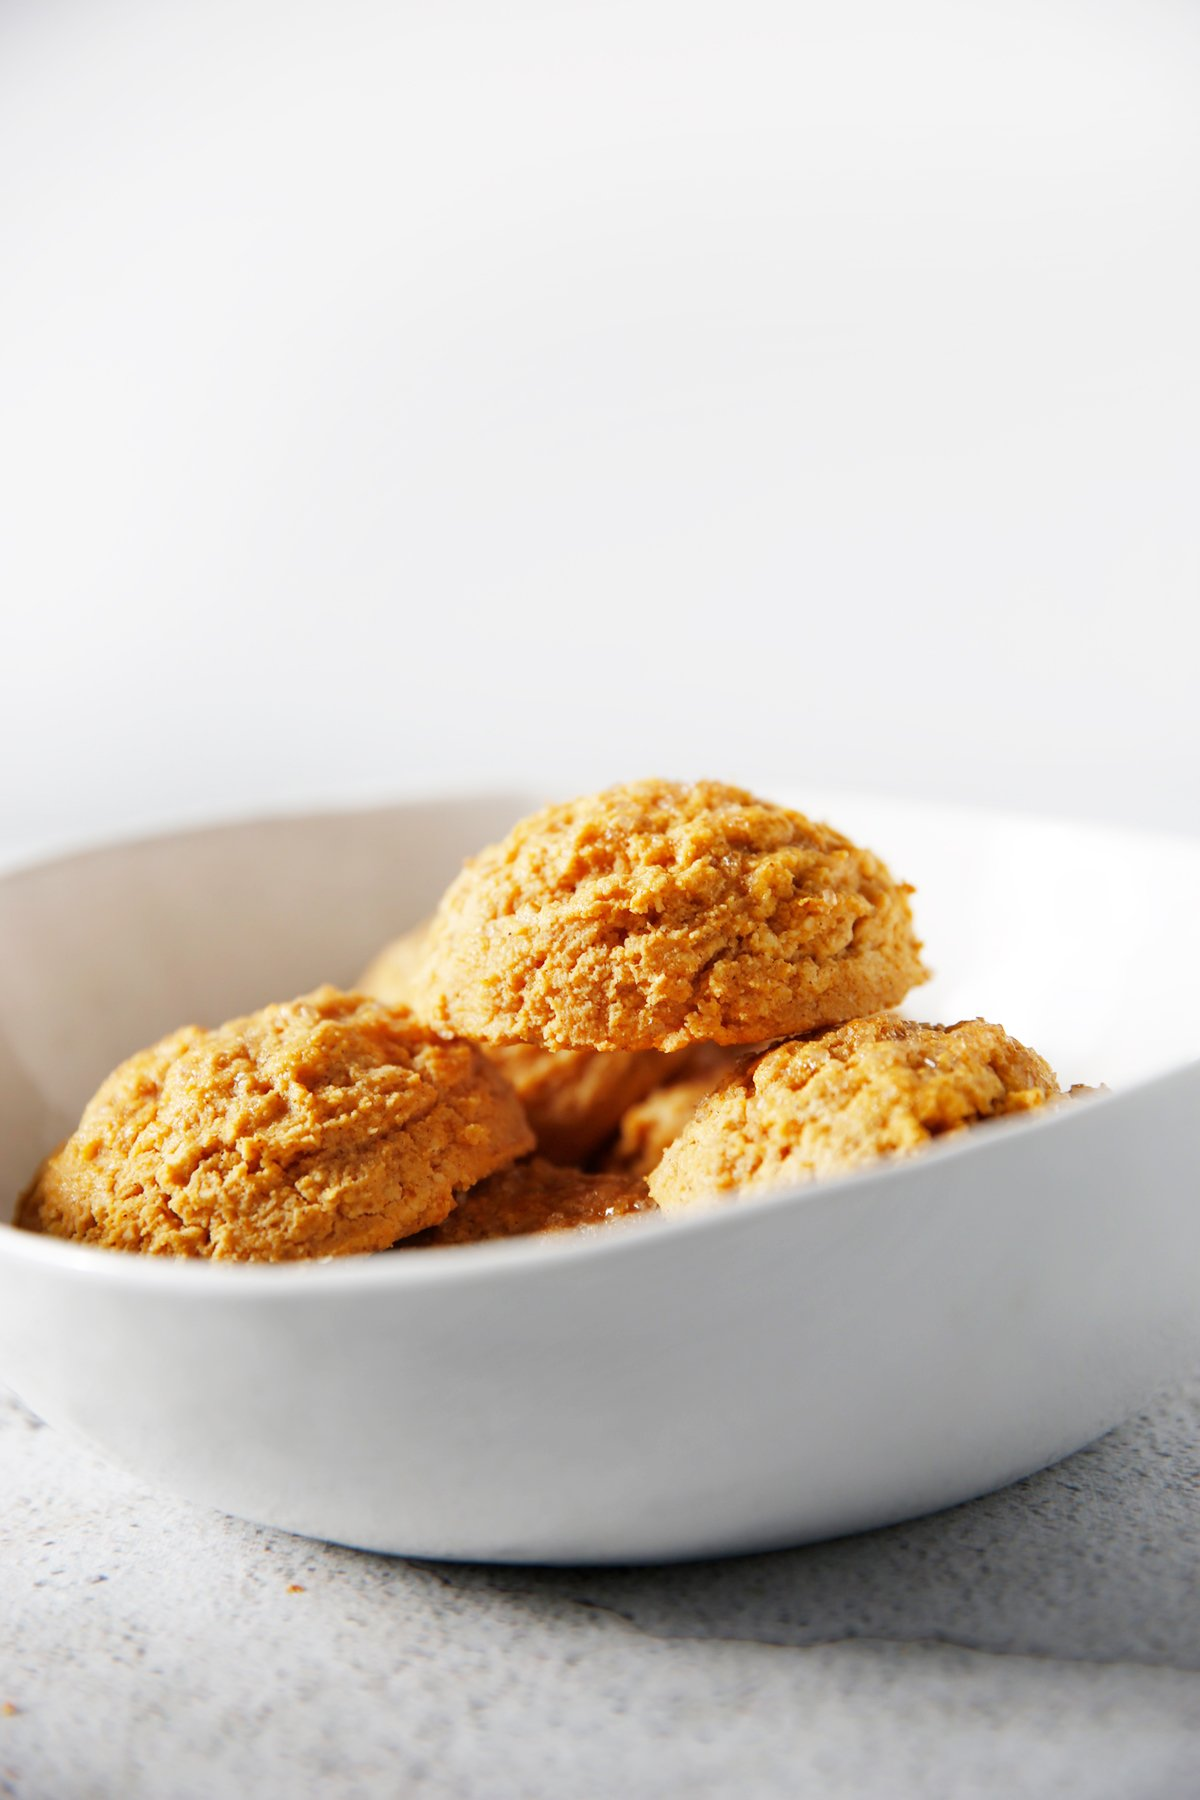 Gluten free pumpkin biscuits in a bowl.